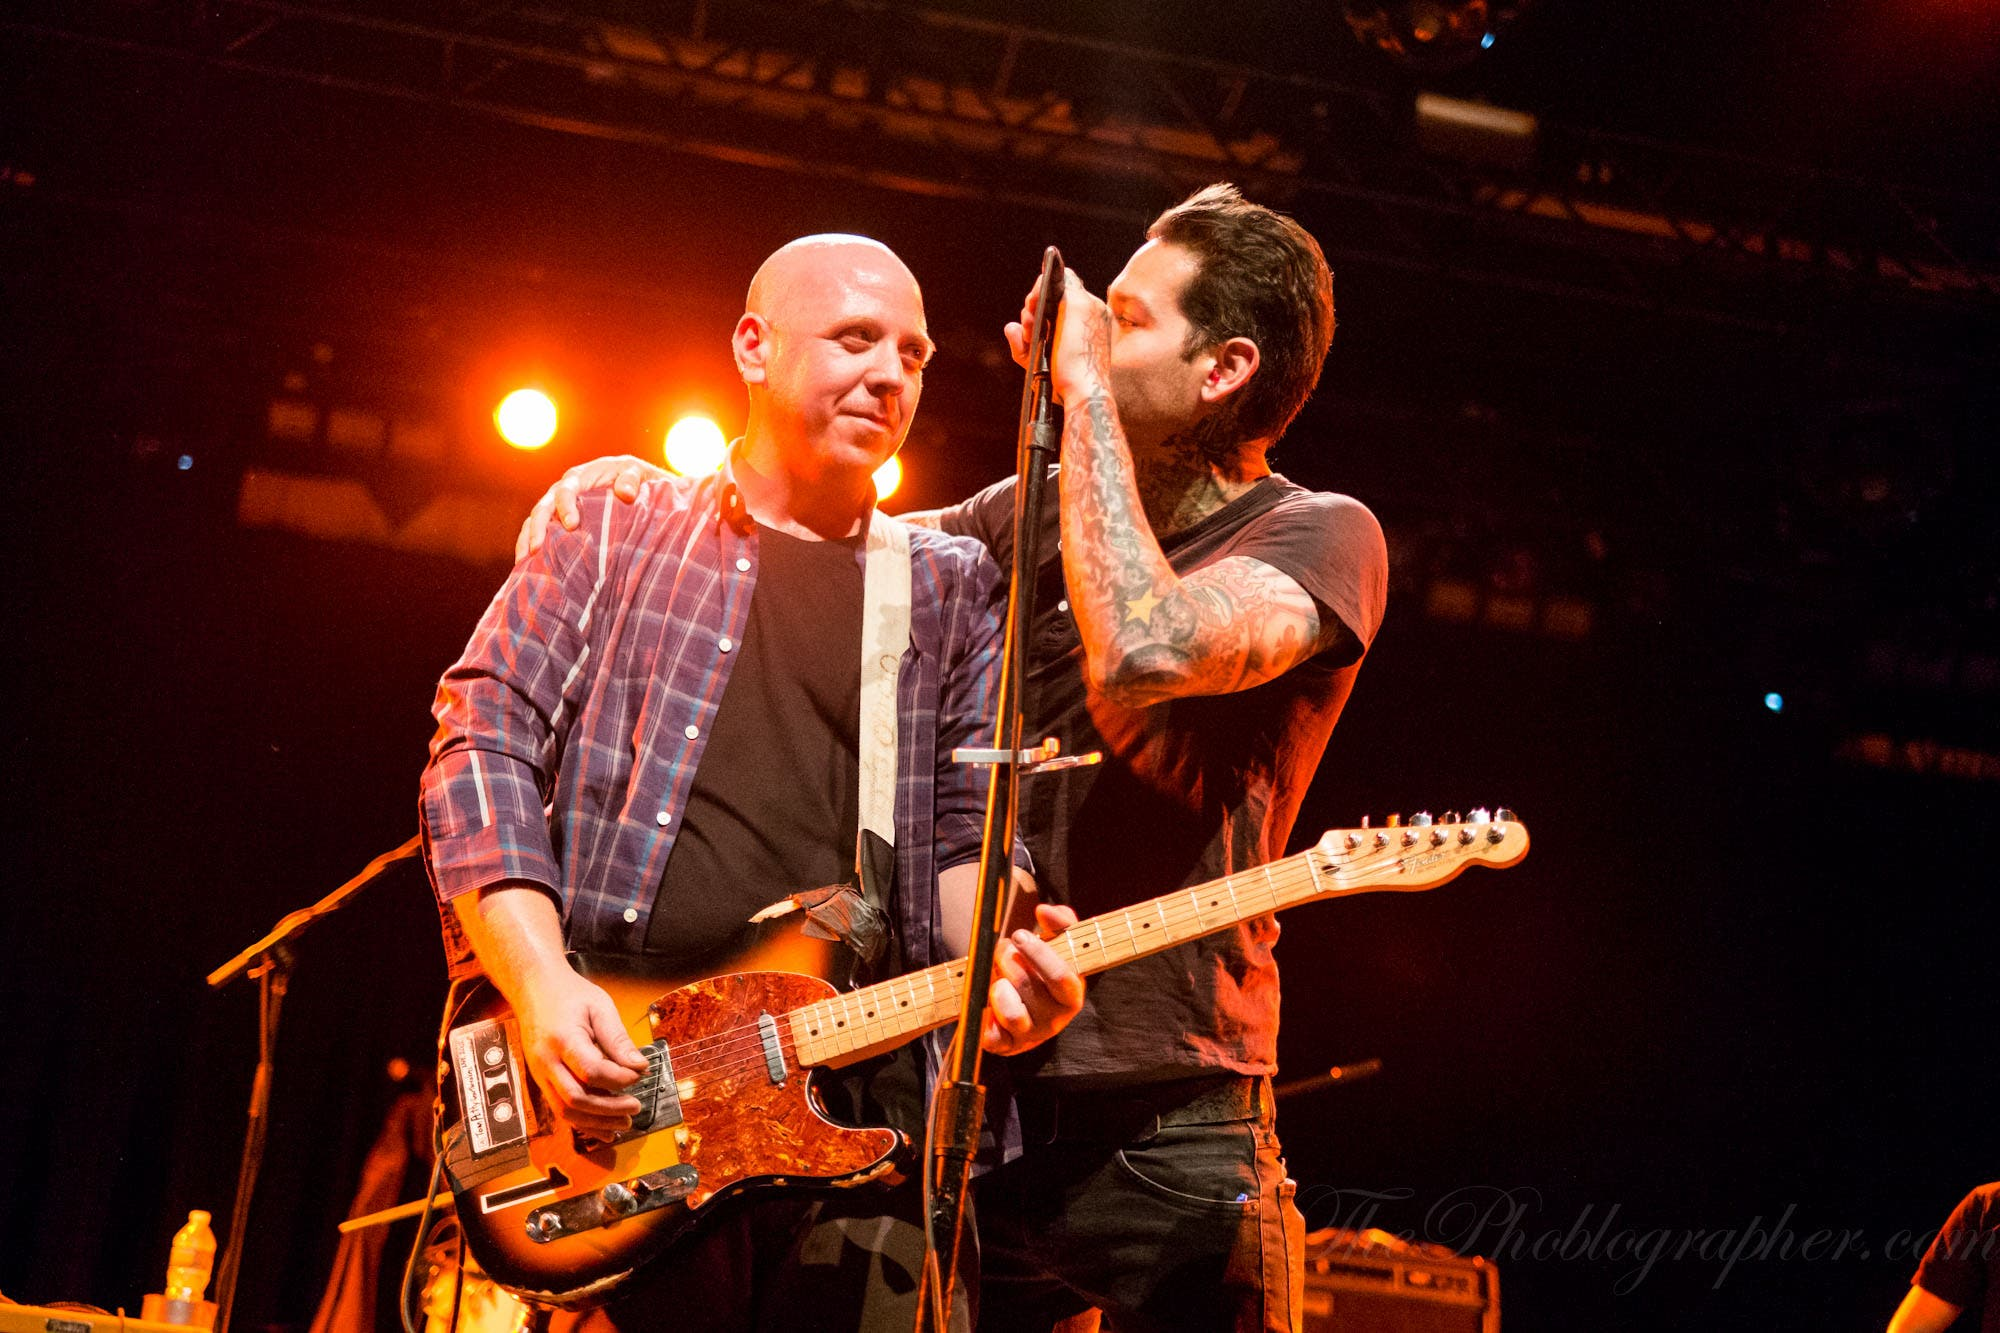 Concert Photography: Nailing the Autofocus in Dark Venues